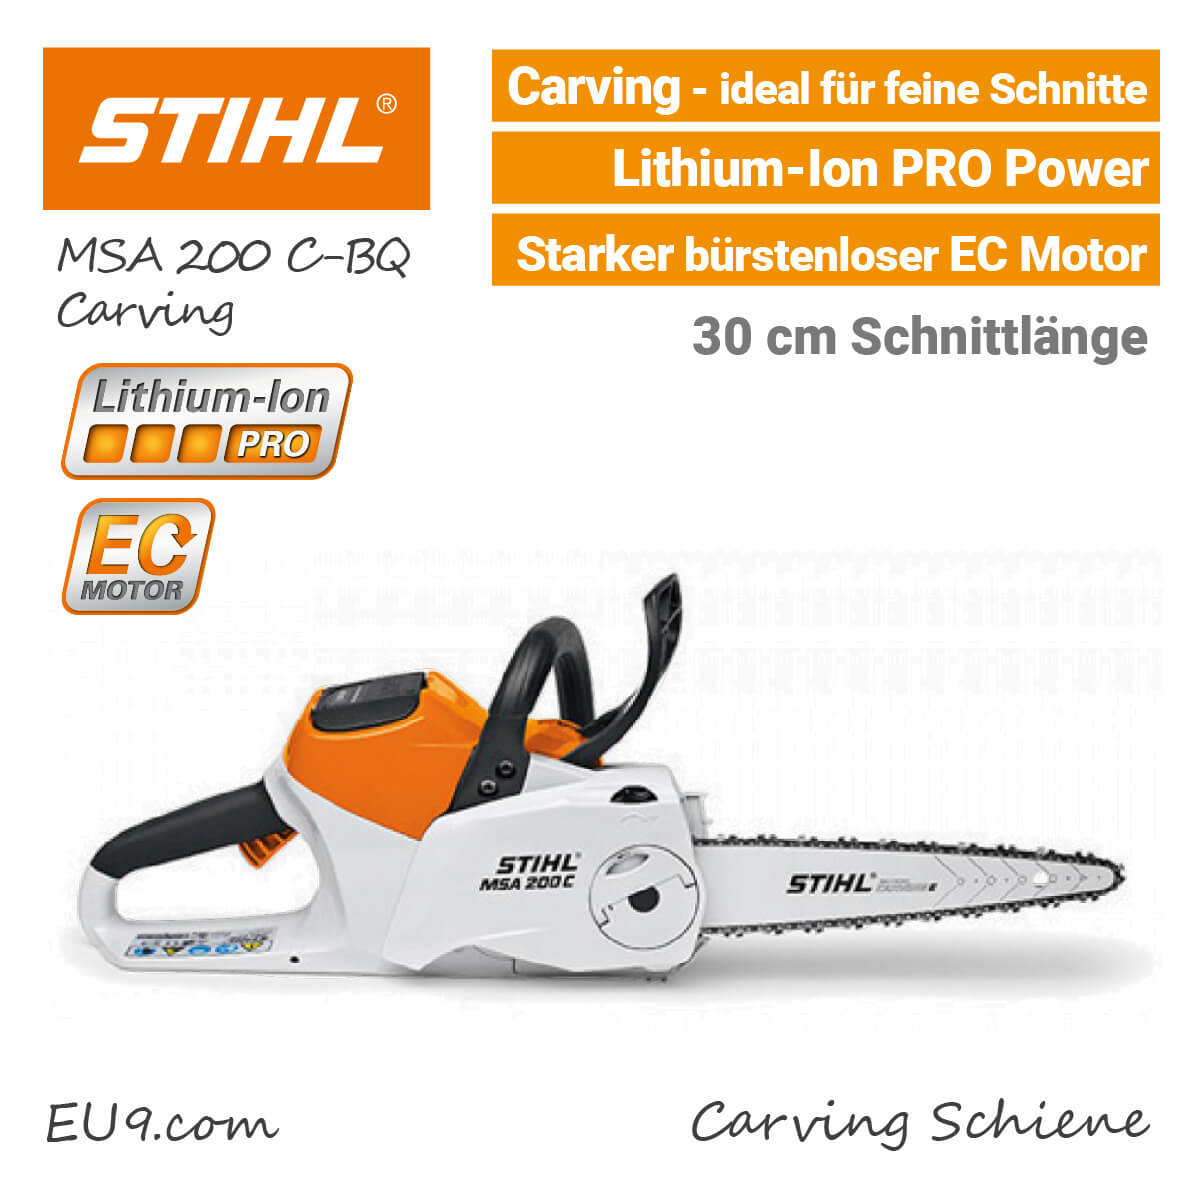 stihl msa 200 c bq carving kettens ge li ion pro jetzt kaufen. Black Bedroom Furniture Sets. Home Design Ideas